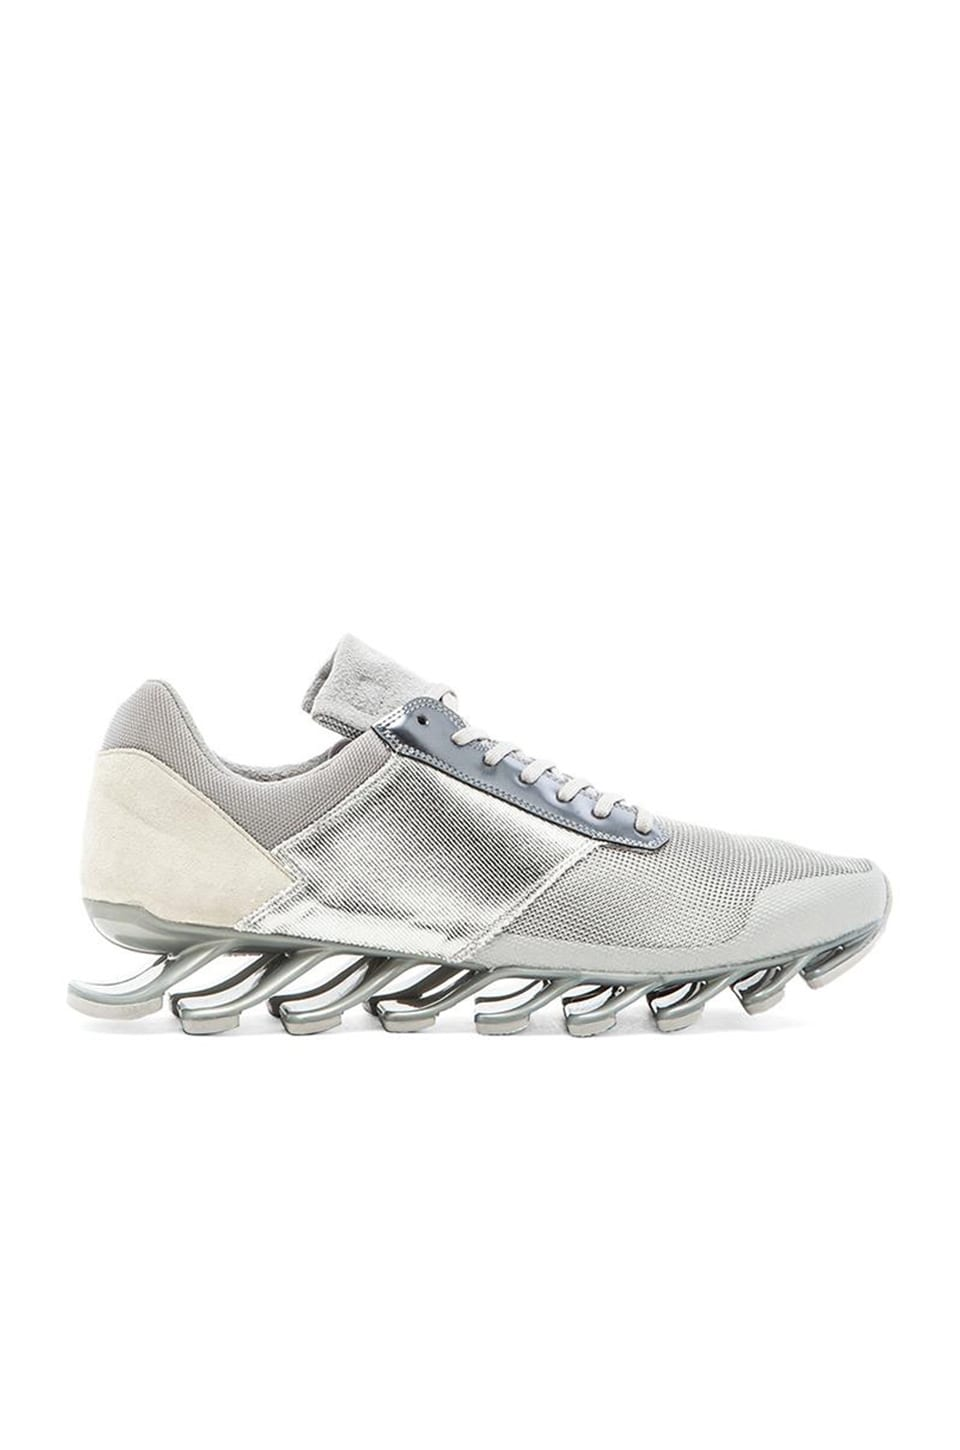 save off 3b3f7 8e9f2 adidas by Rick Owens Springblade Low in Silver Met Silver ...